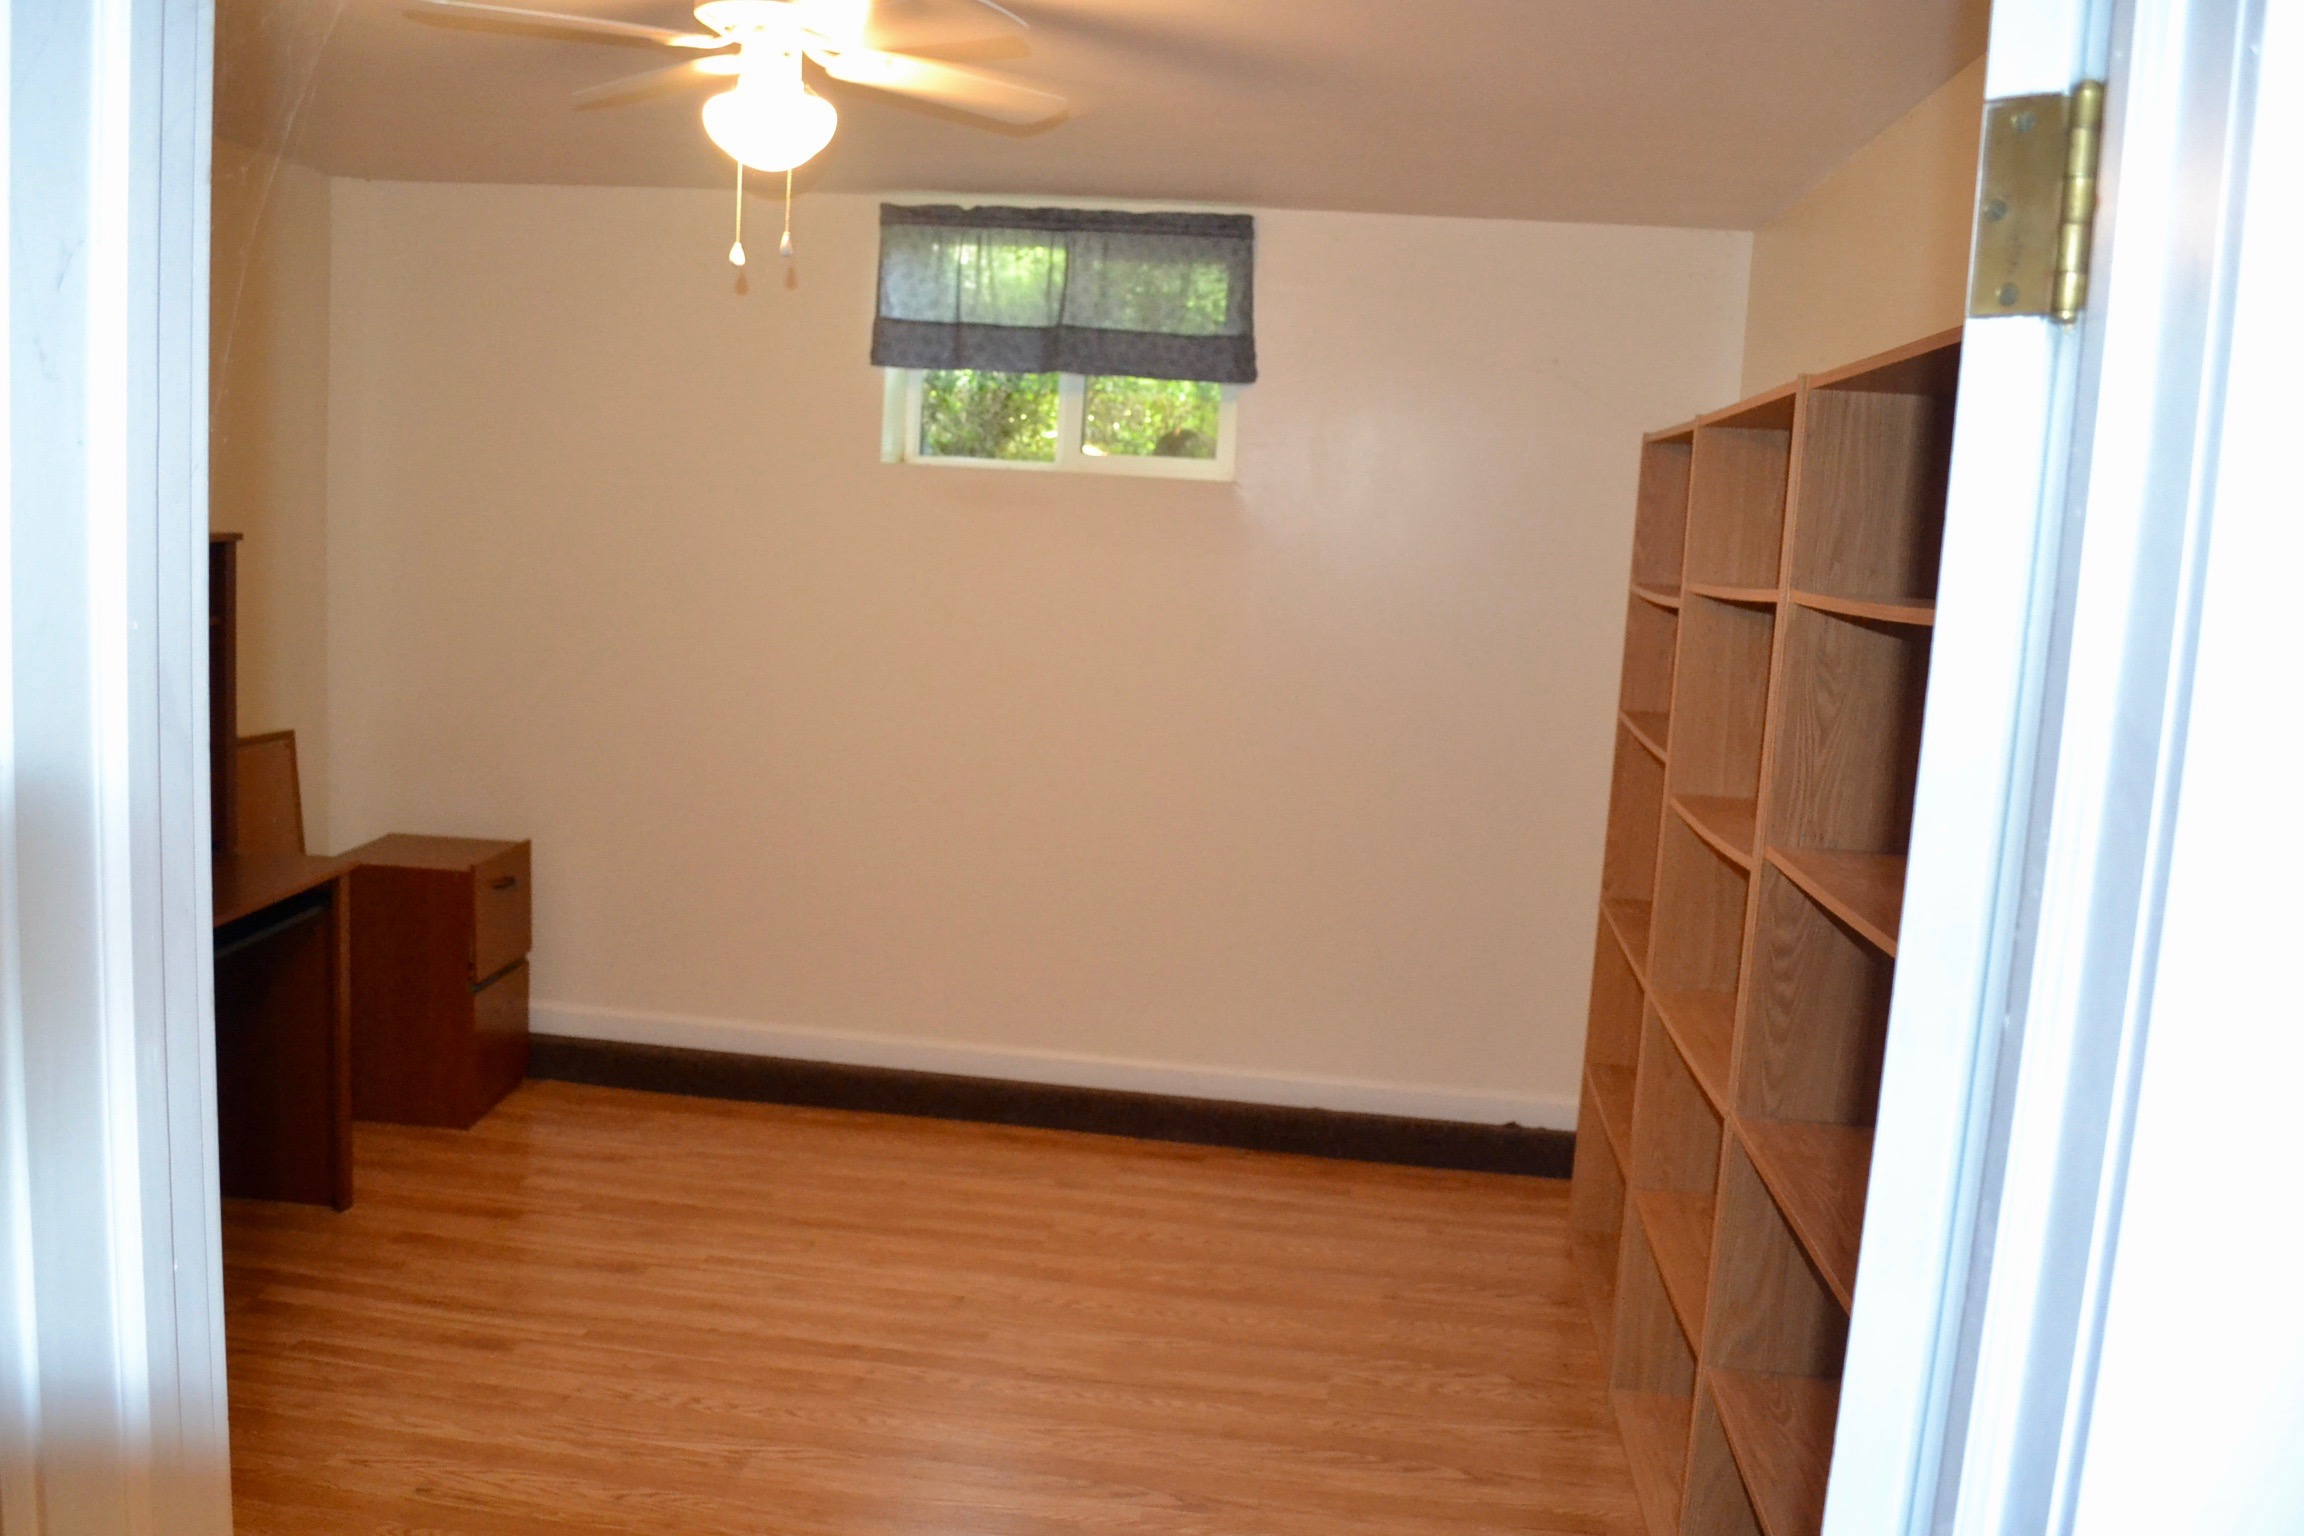 Basement-Finished Room 3-1.jpg